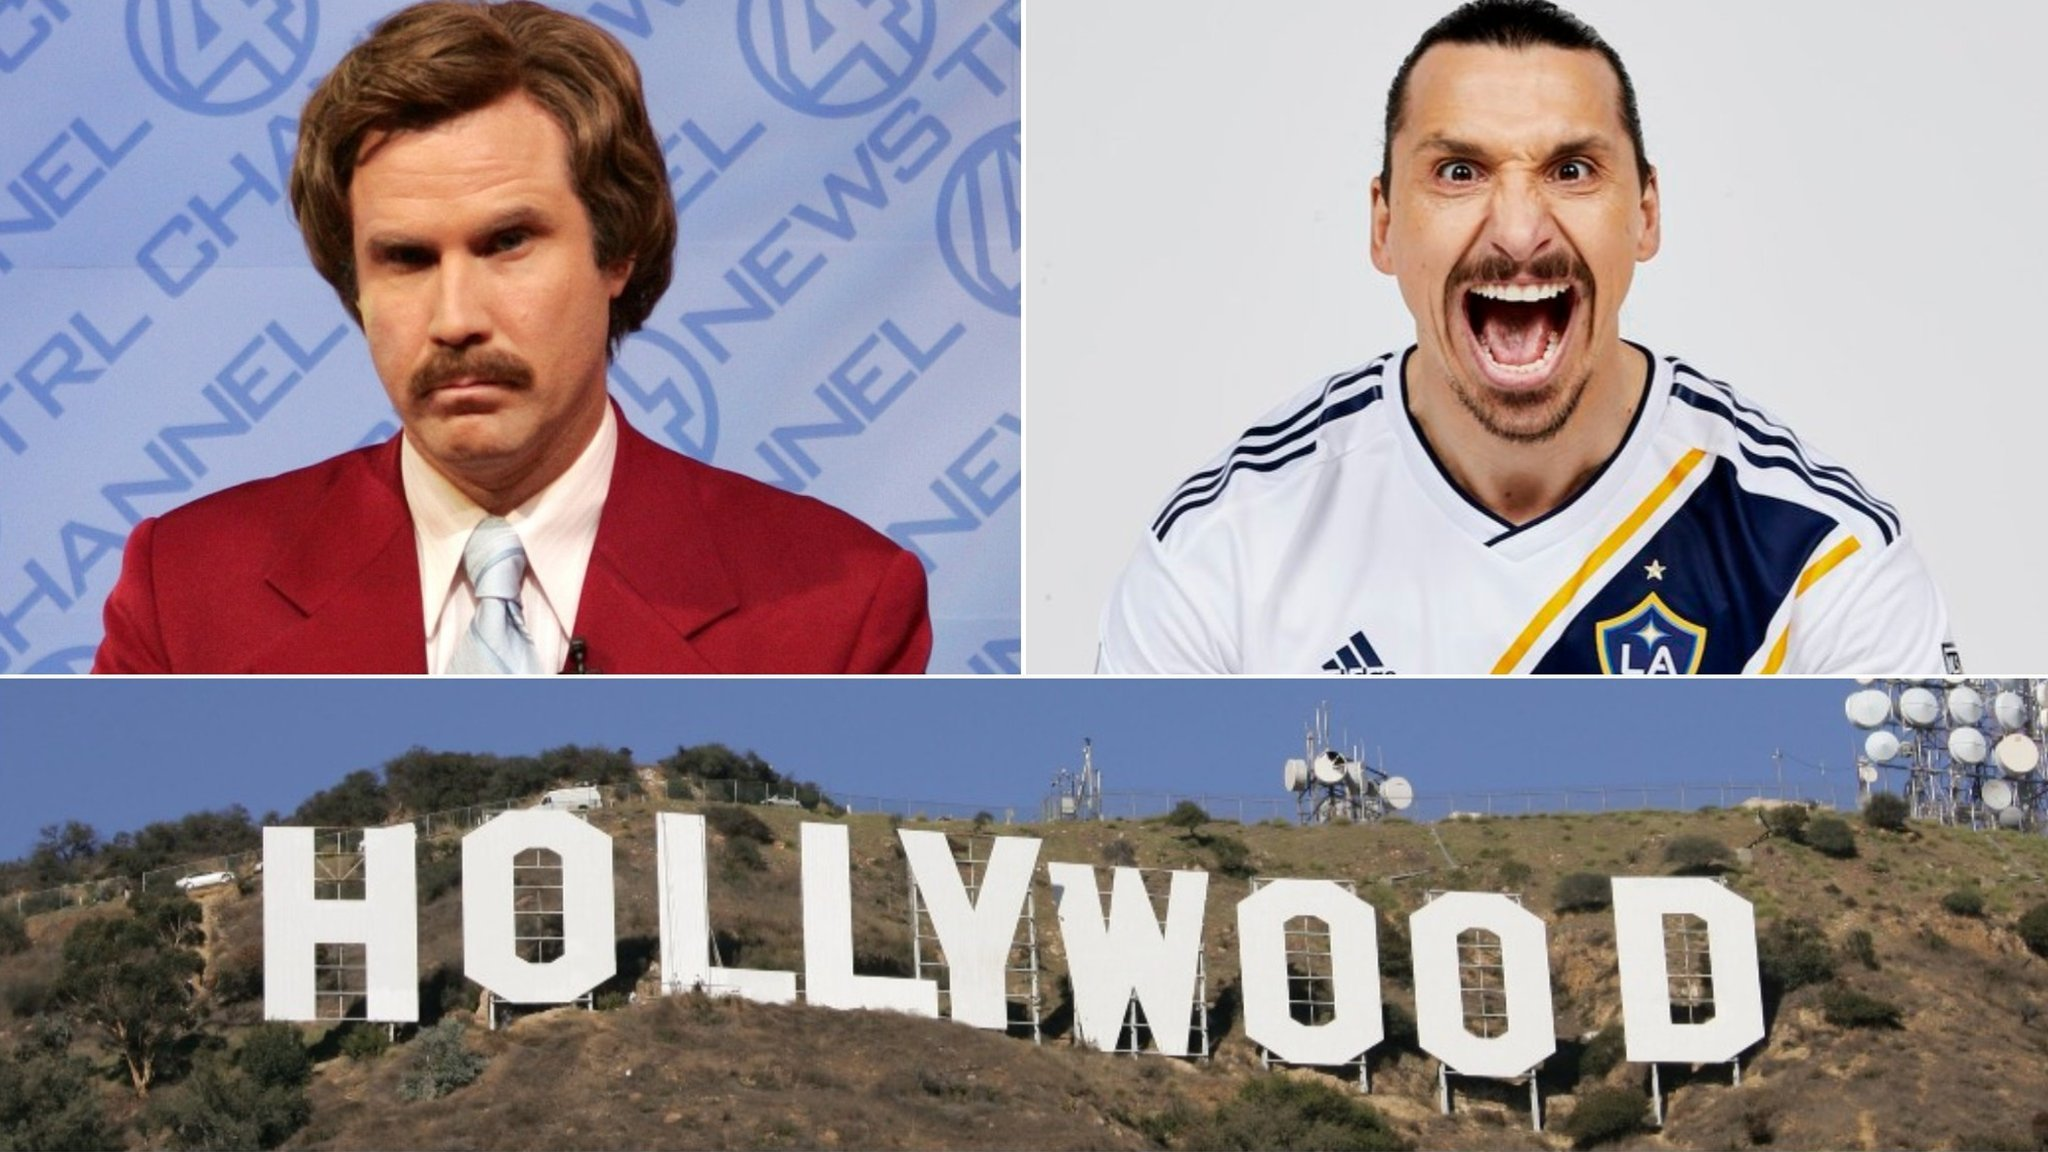 FC v Galaxy, Ferrell v Zlatan - inaugural Los Angeles derby has Hollywood script